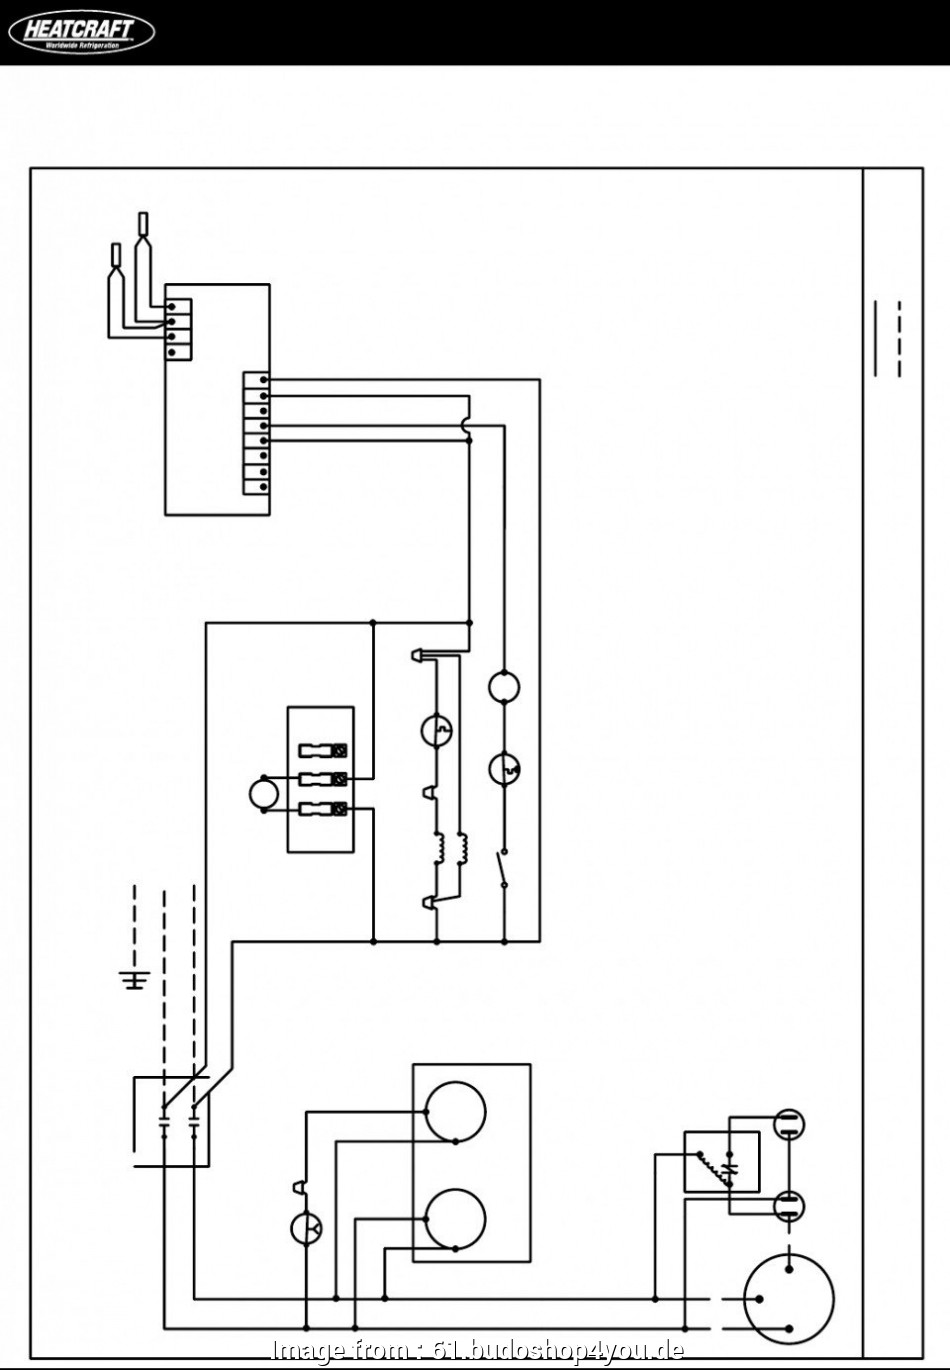 Heatcraft Walk In Cooler Wiring Diagram Best Bohn